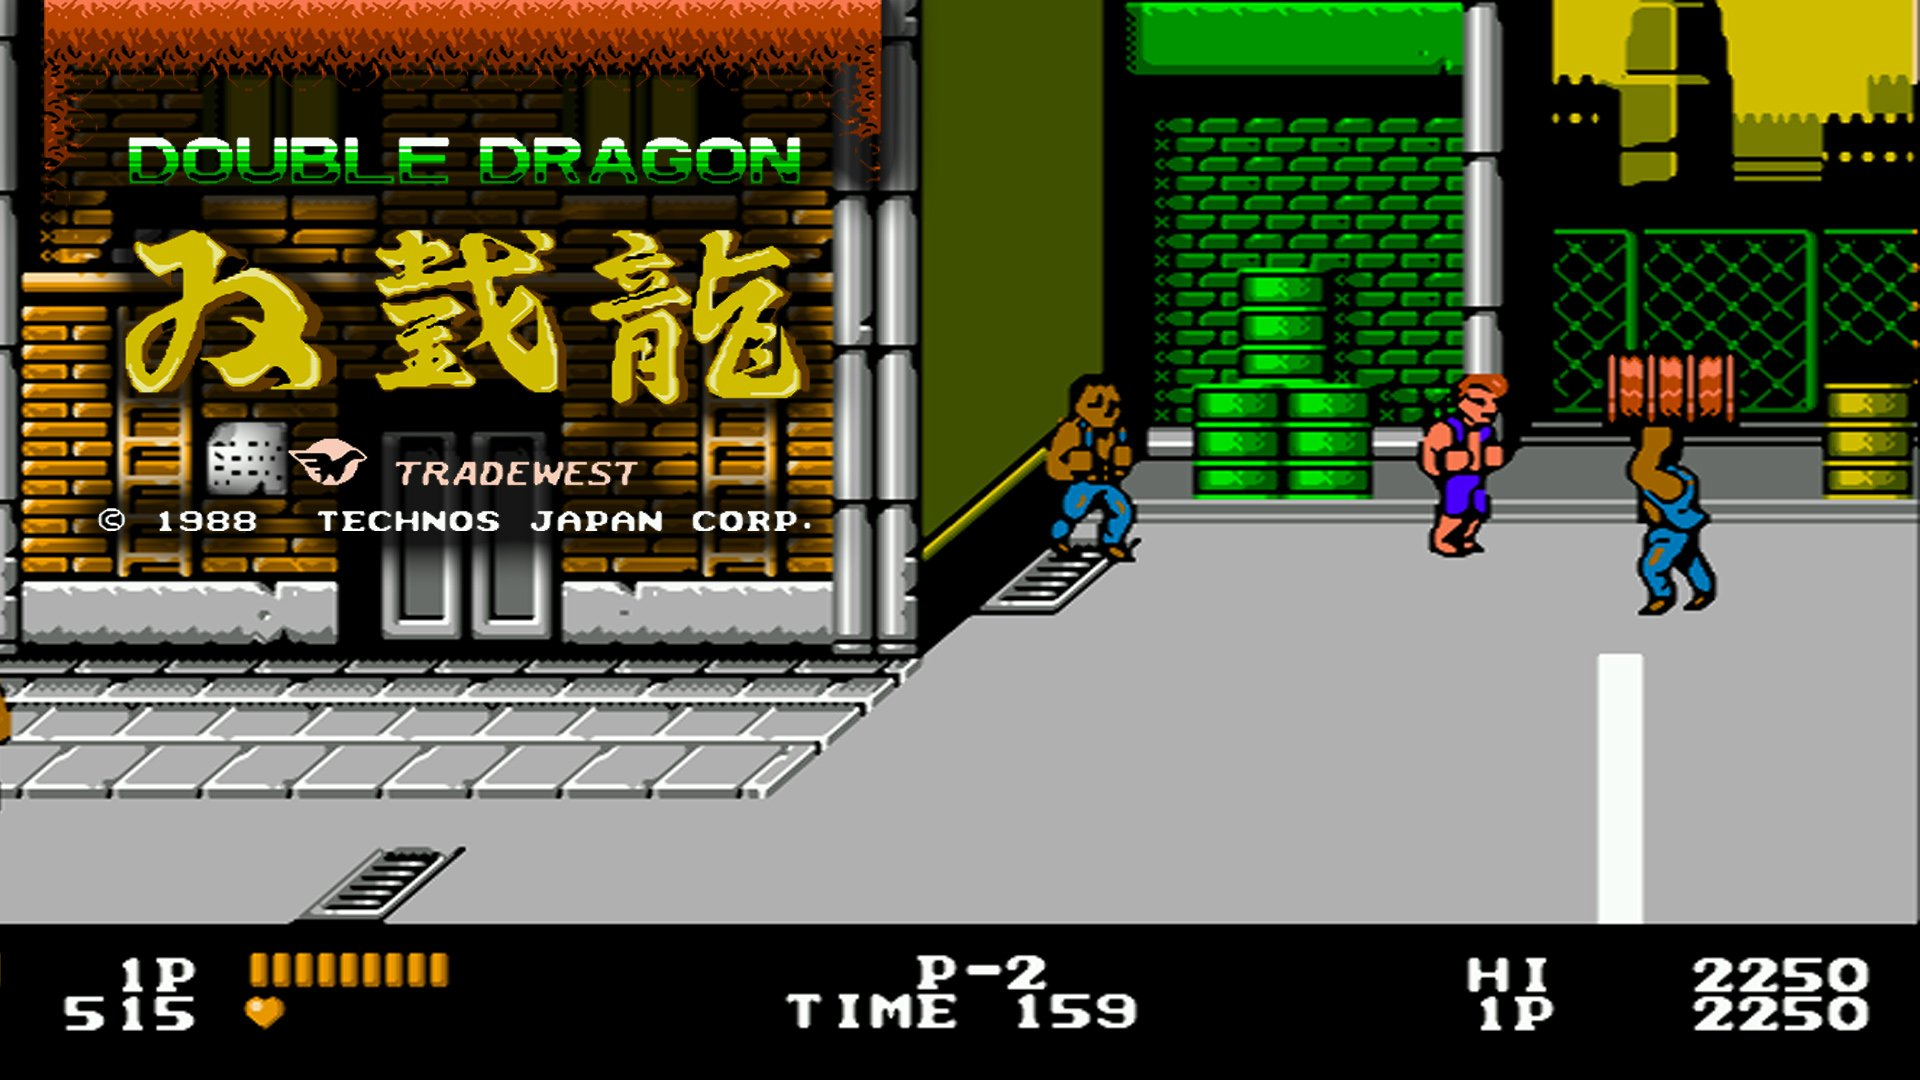 Double Dragon Hd Wallpaper Background Image 1920x1080 Id